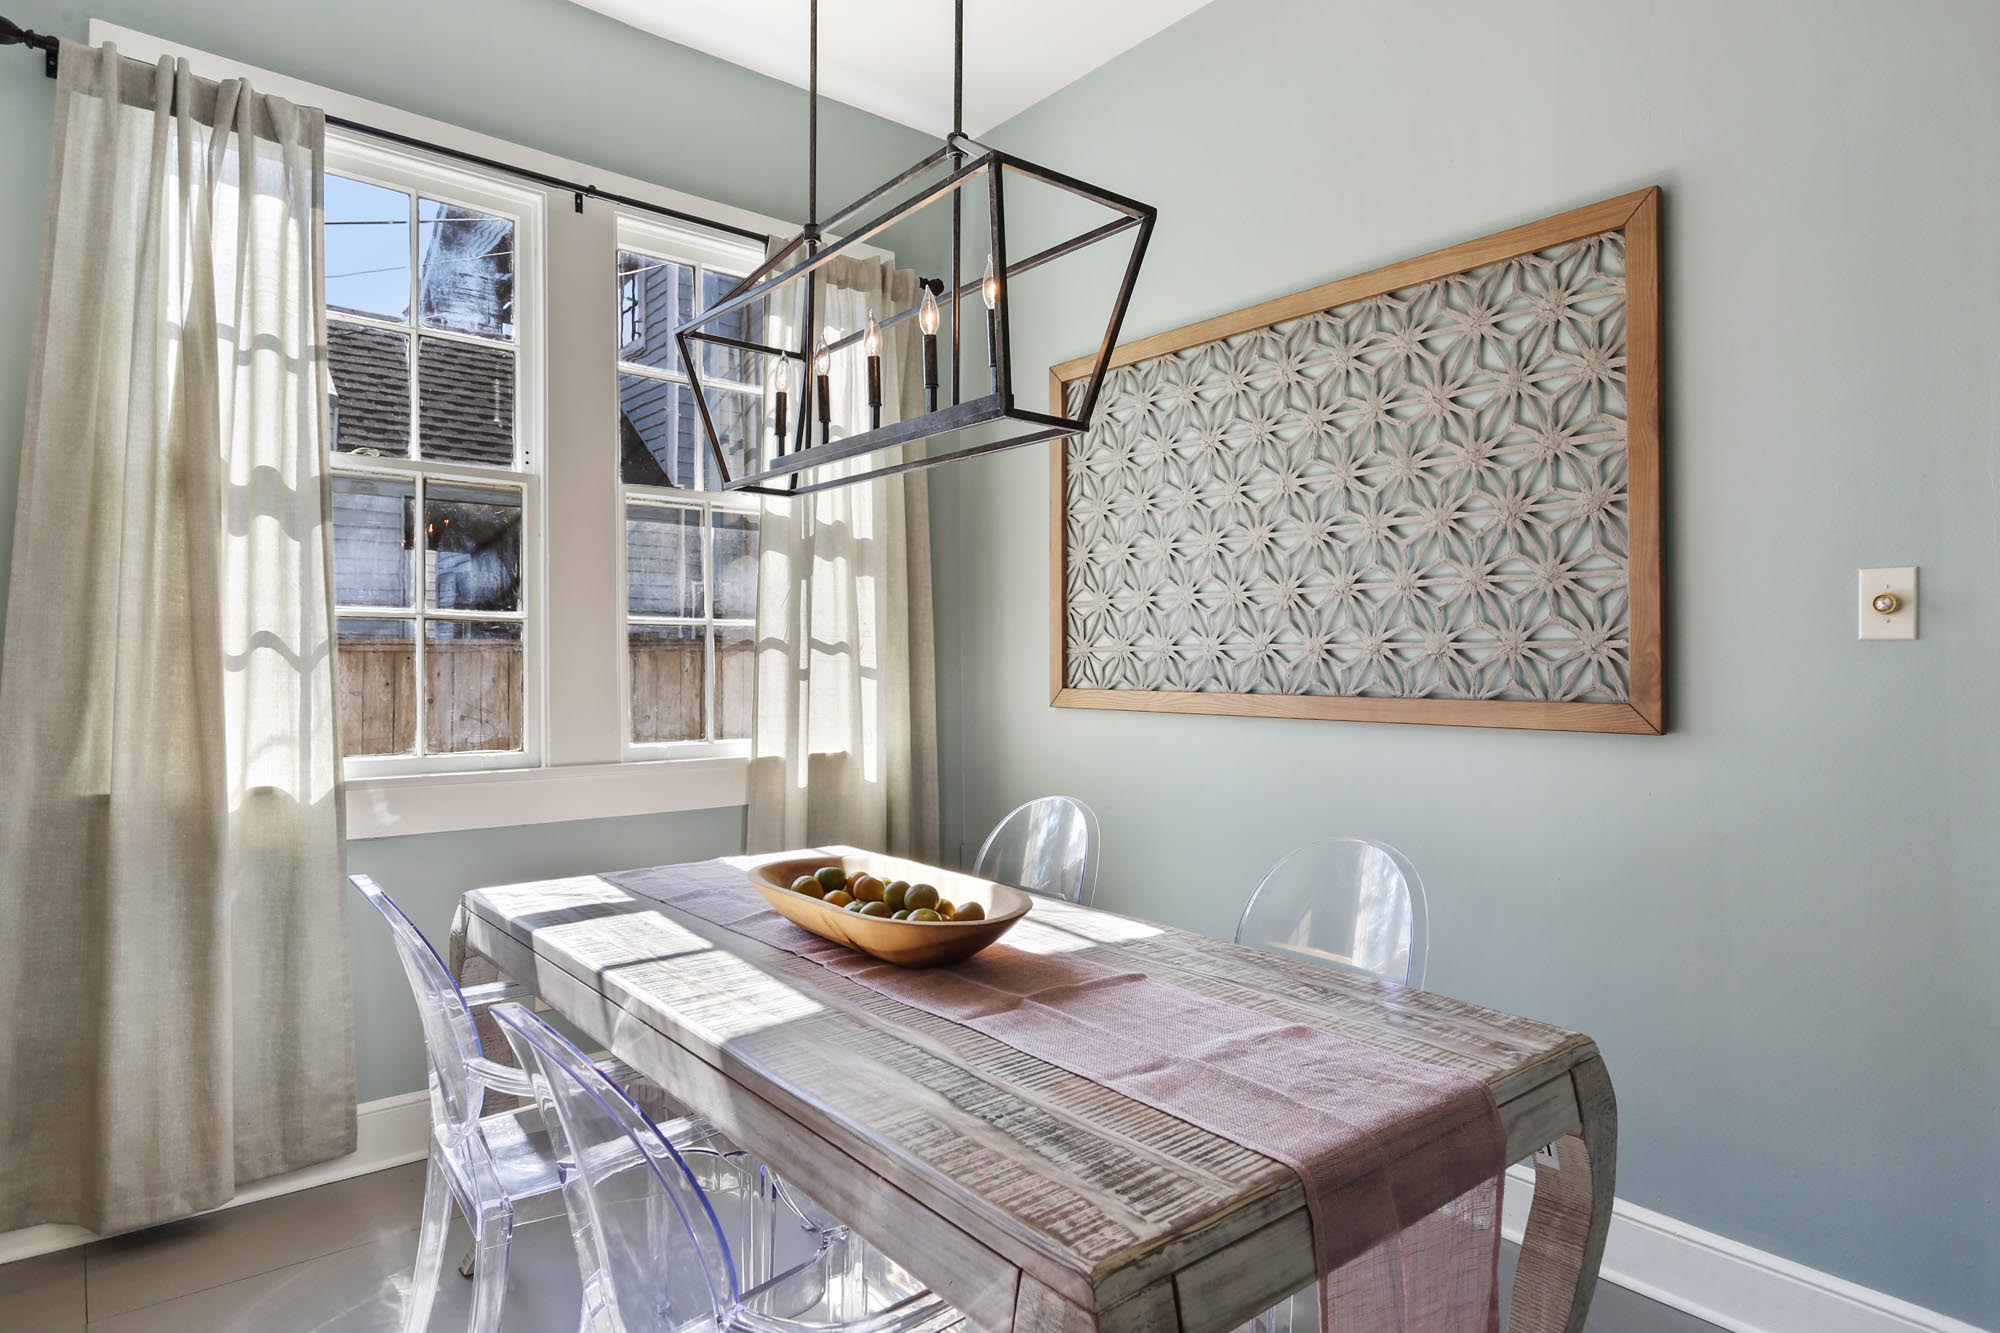 Small dining room space with seating for four